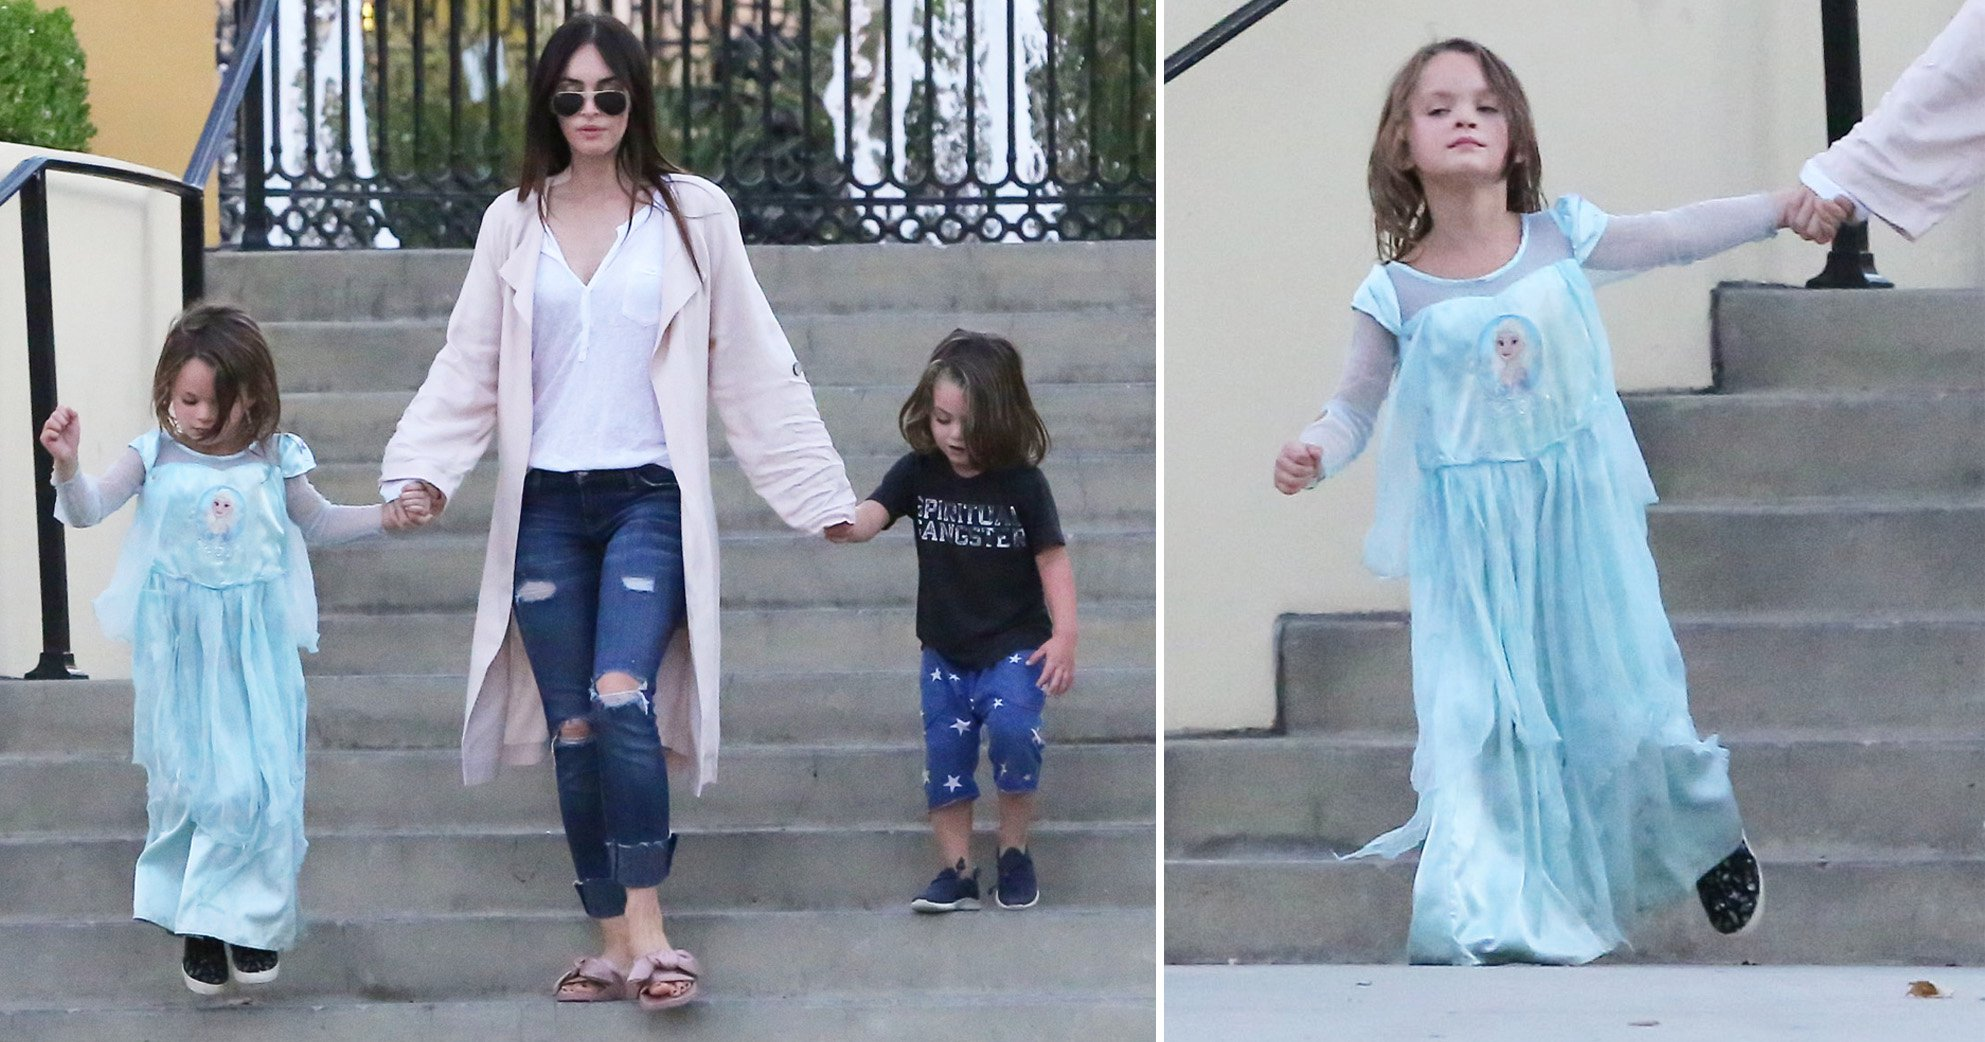 Megan Fox's son Noah, 5, rocks Frozen dress on family outing – and he's working it